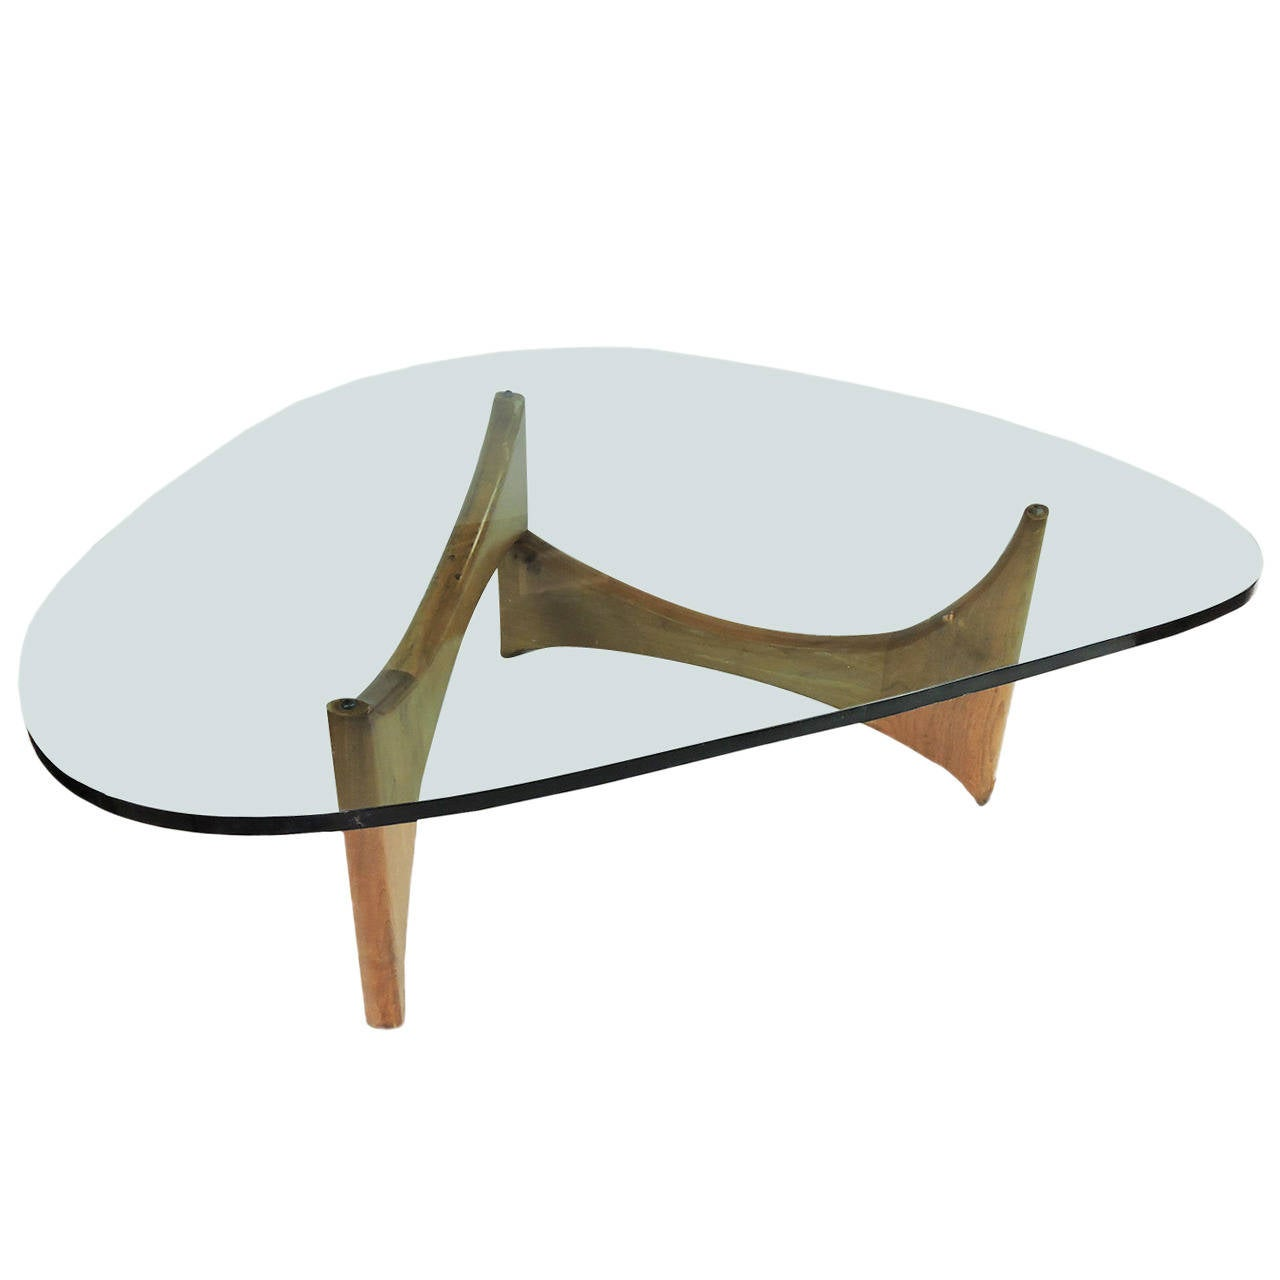 Mid century modern glass and wood coffee table at 1stdibs for Contemporary glass top coffee table